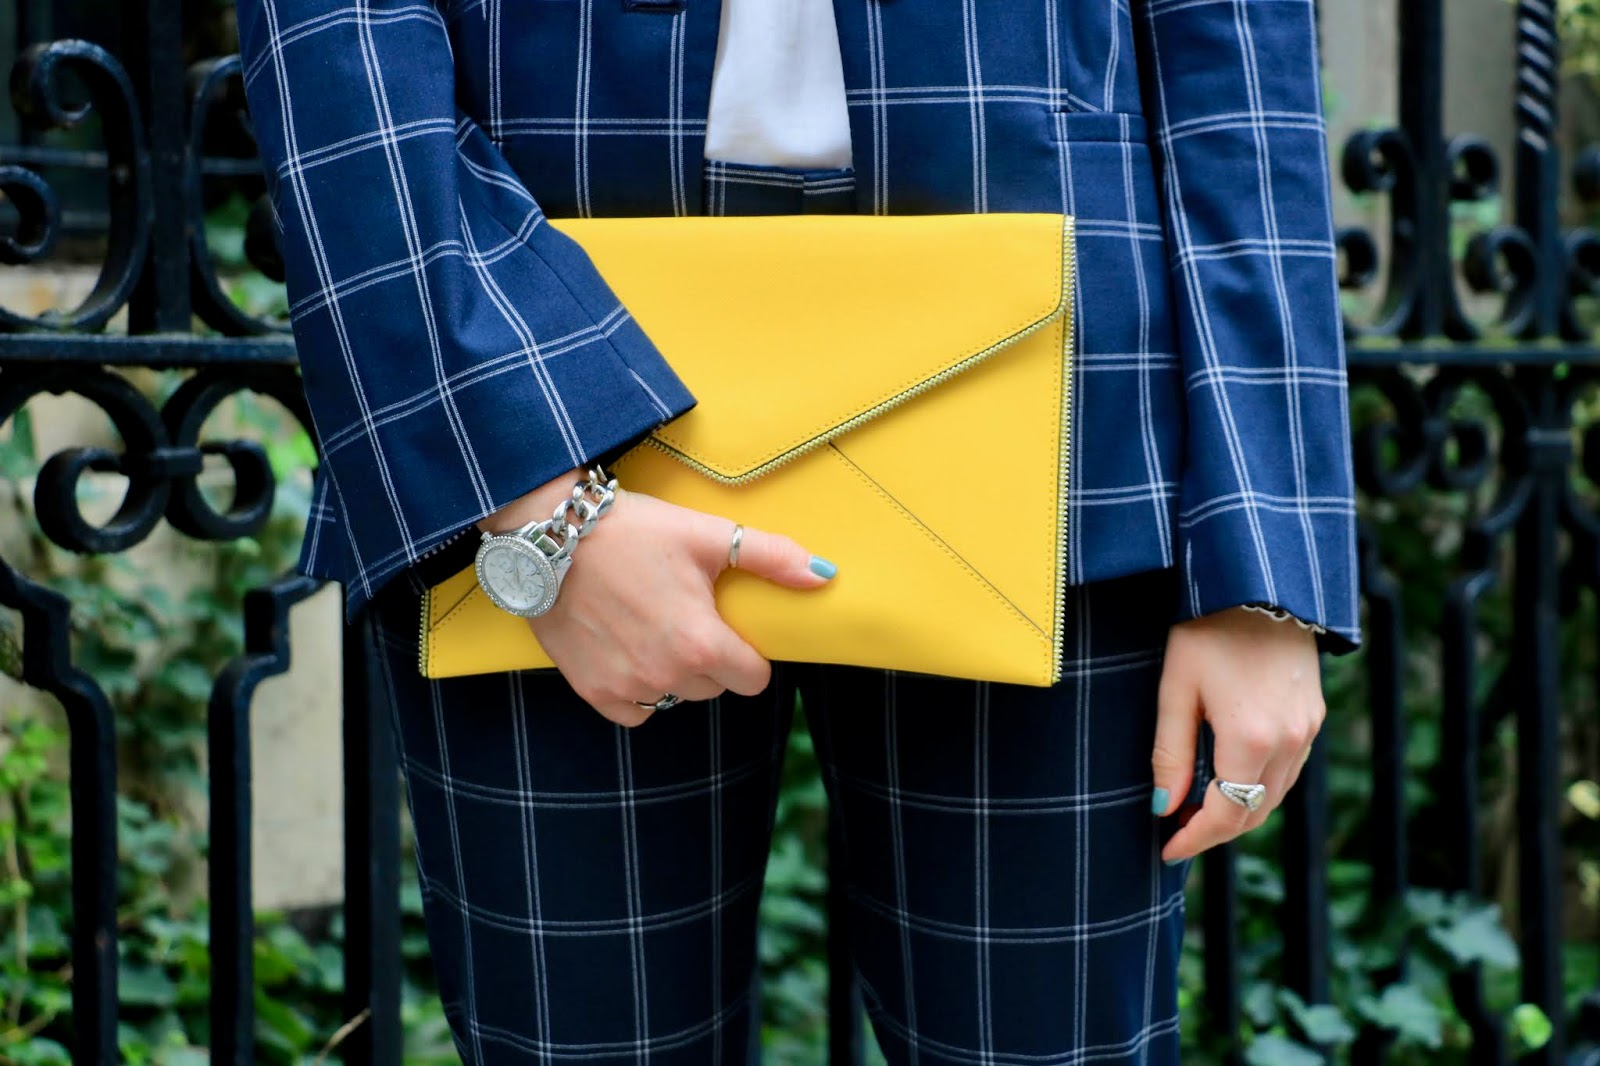 Nyc fashion blogger Kathleen Harper's yellow Rebecca Minkoff envelope clutch